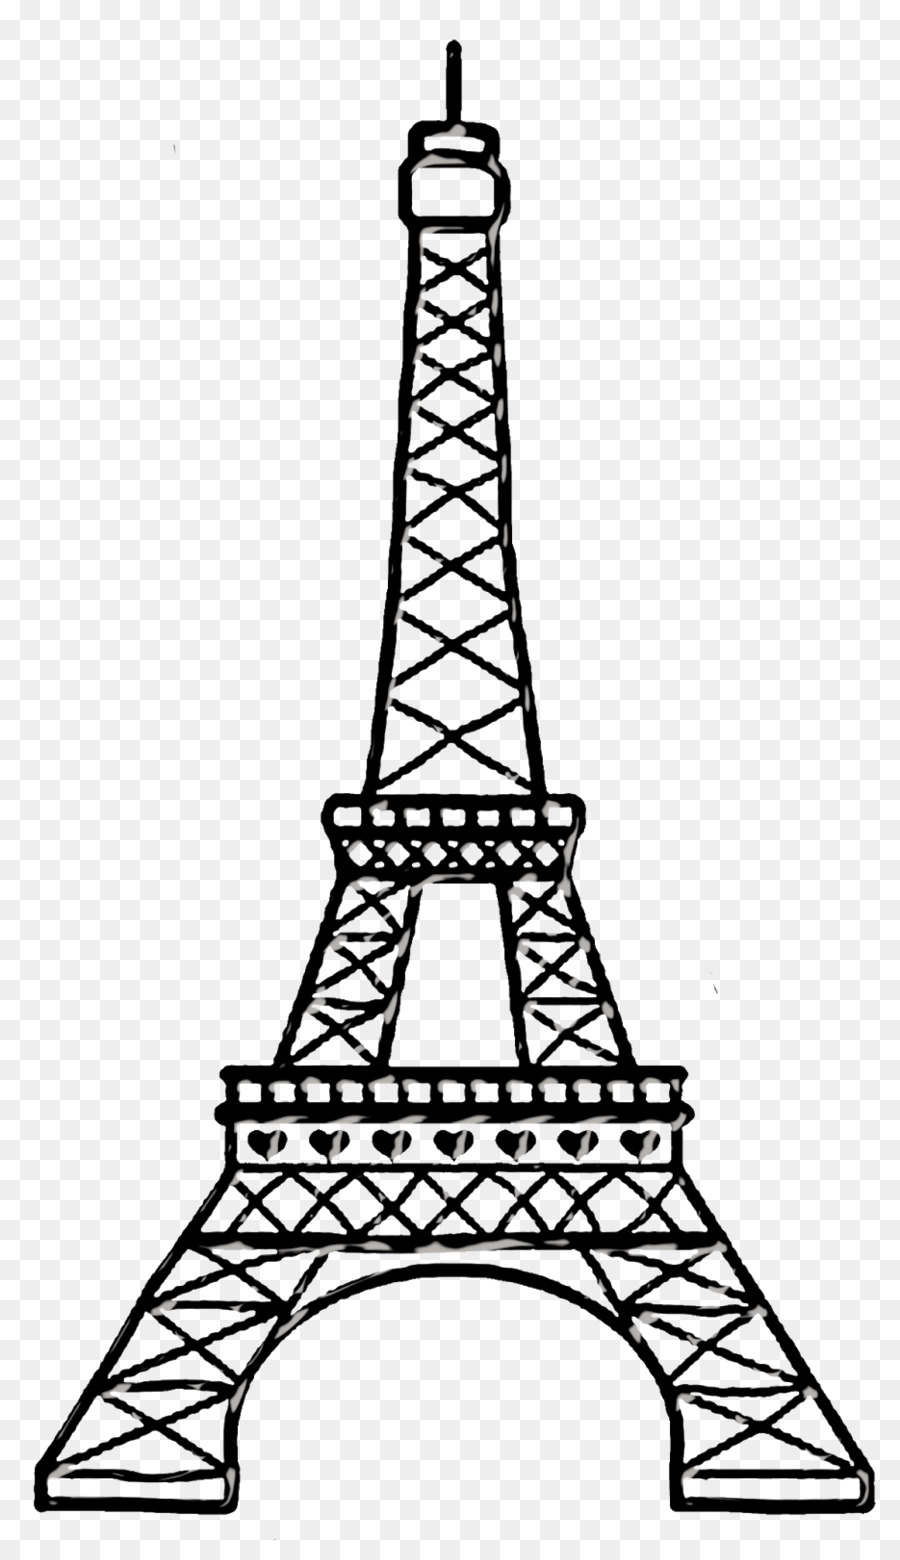 Eiffel Tower Clipart Free Download Clip Art.